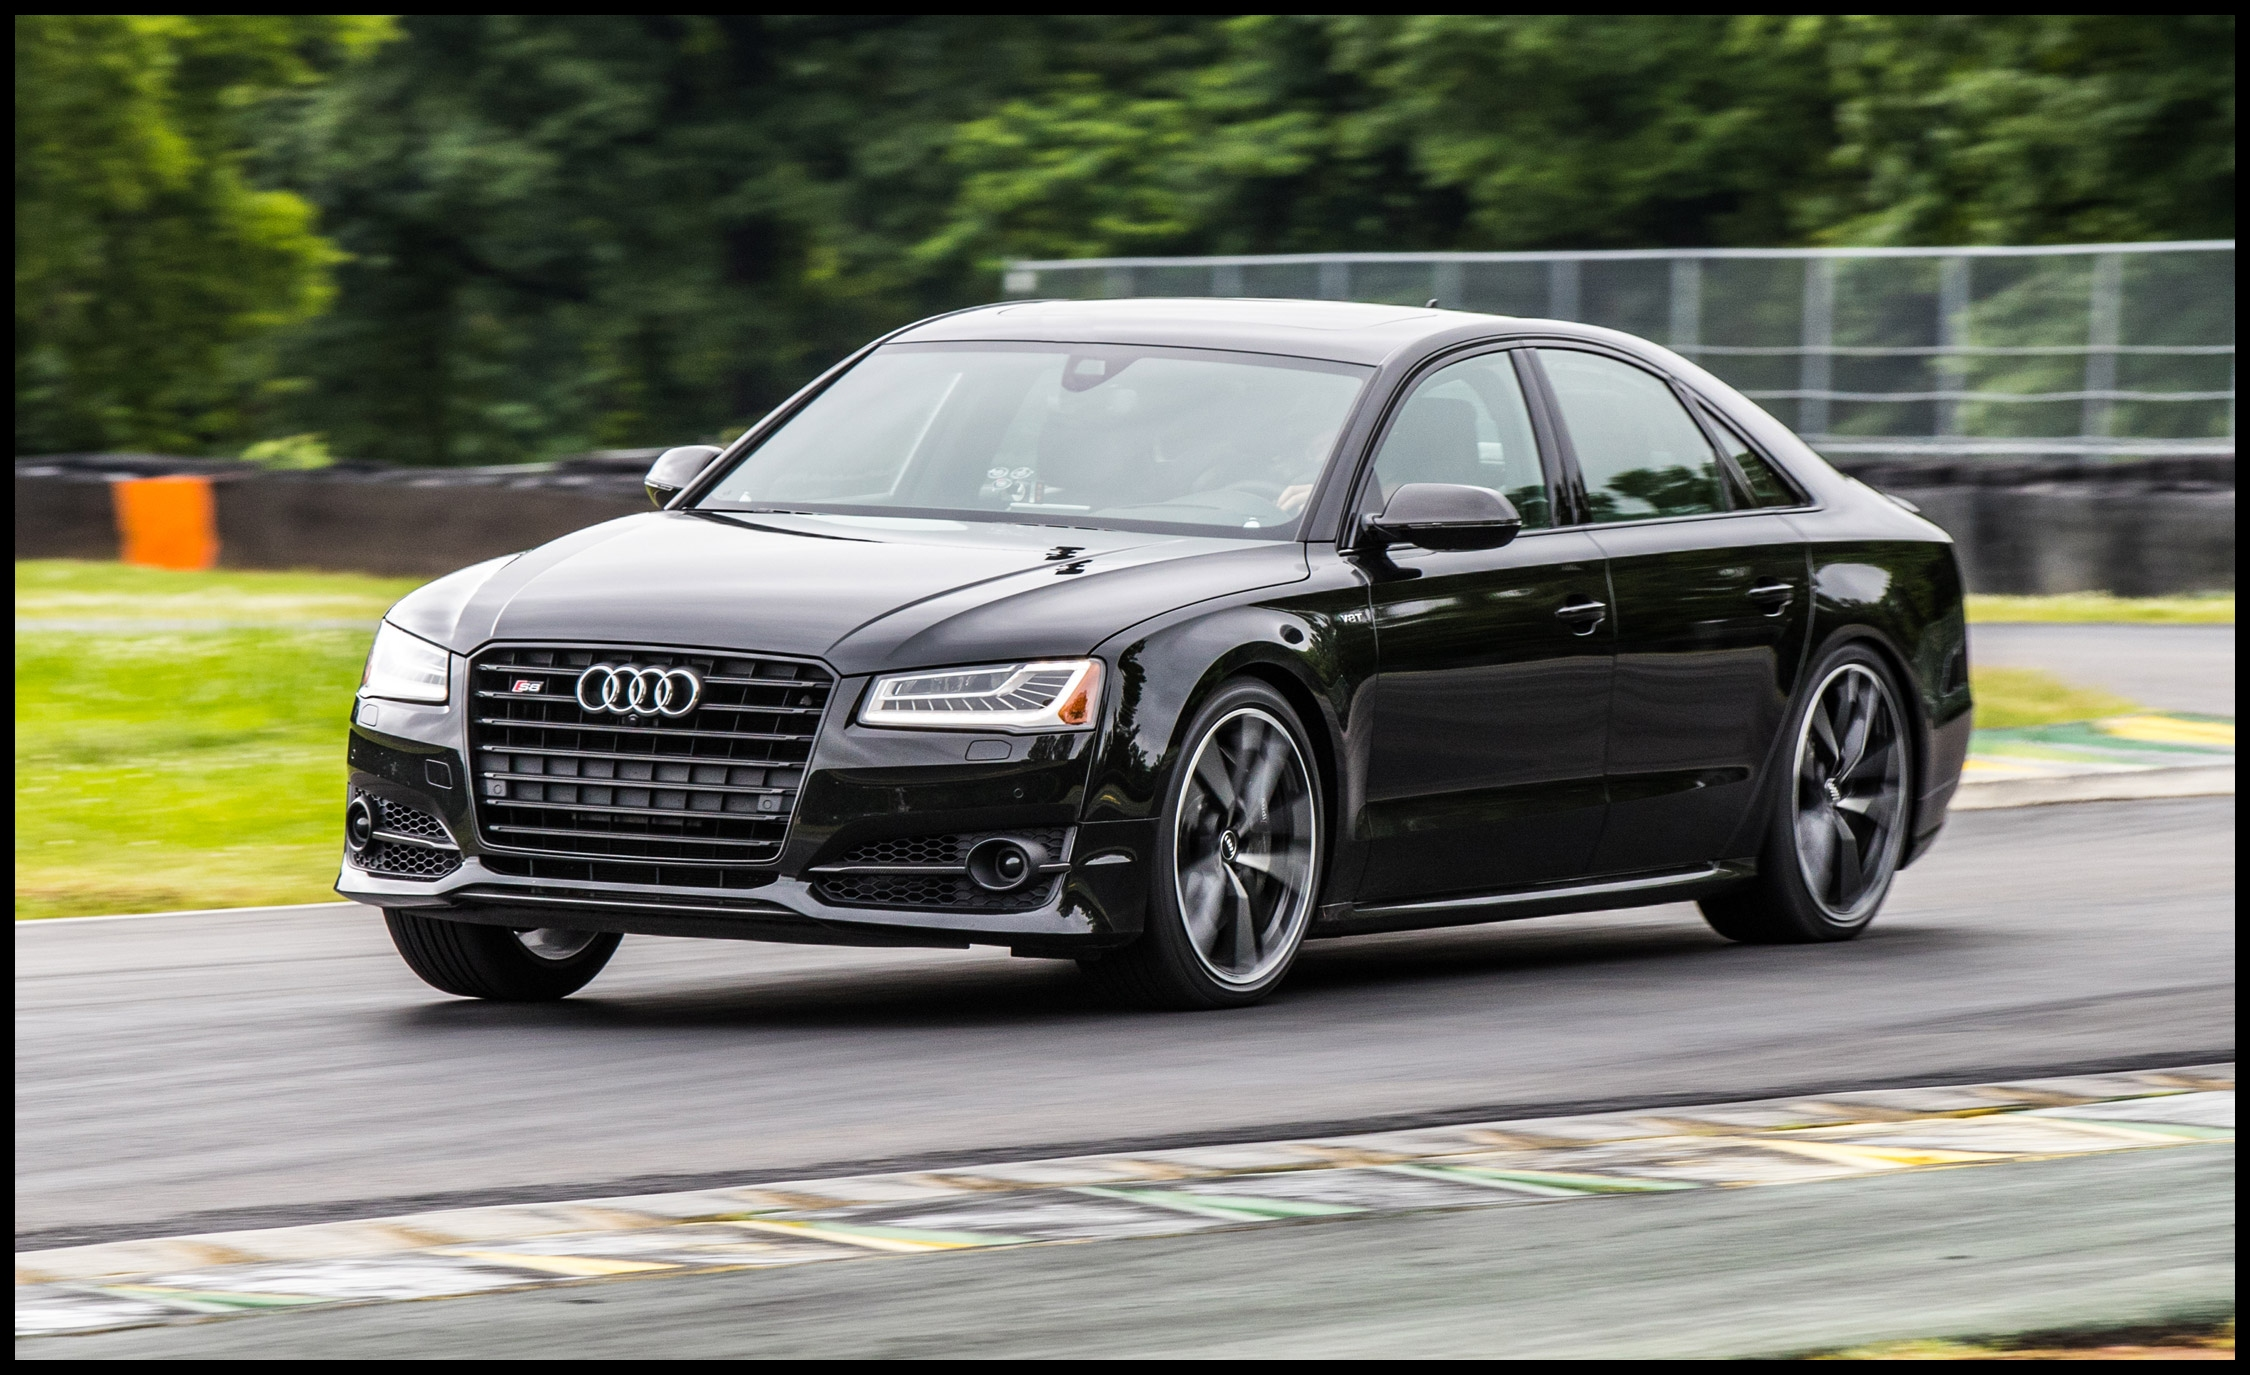 audi s8 at lightning lap 2017 feature car and driver photo s original